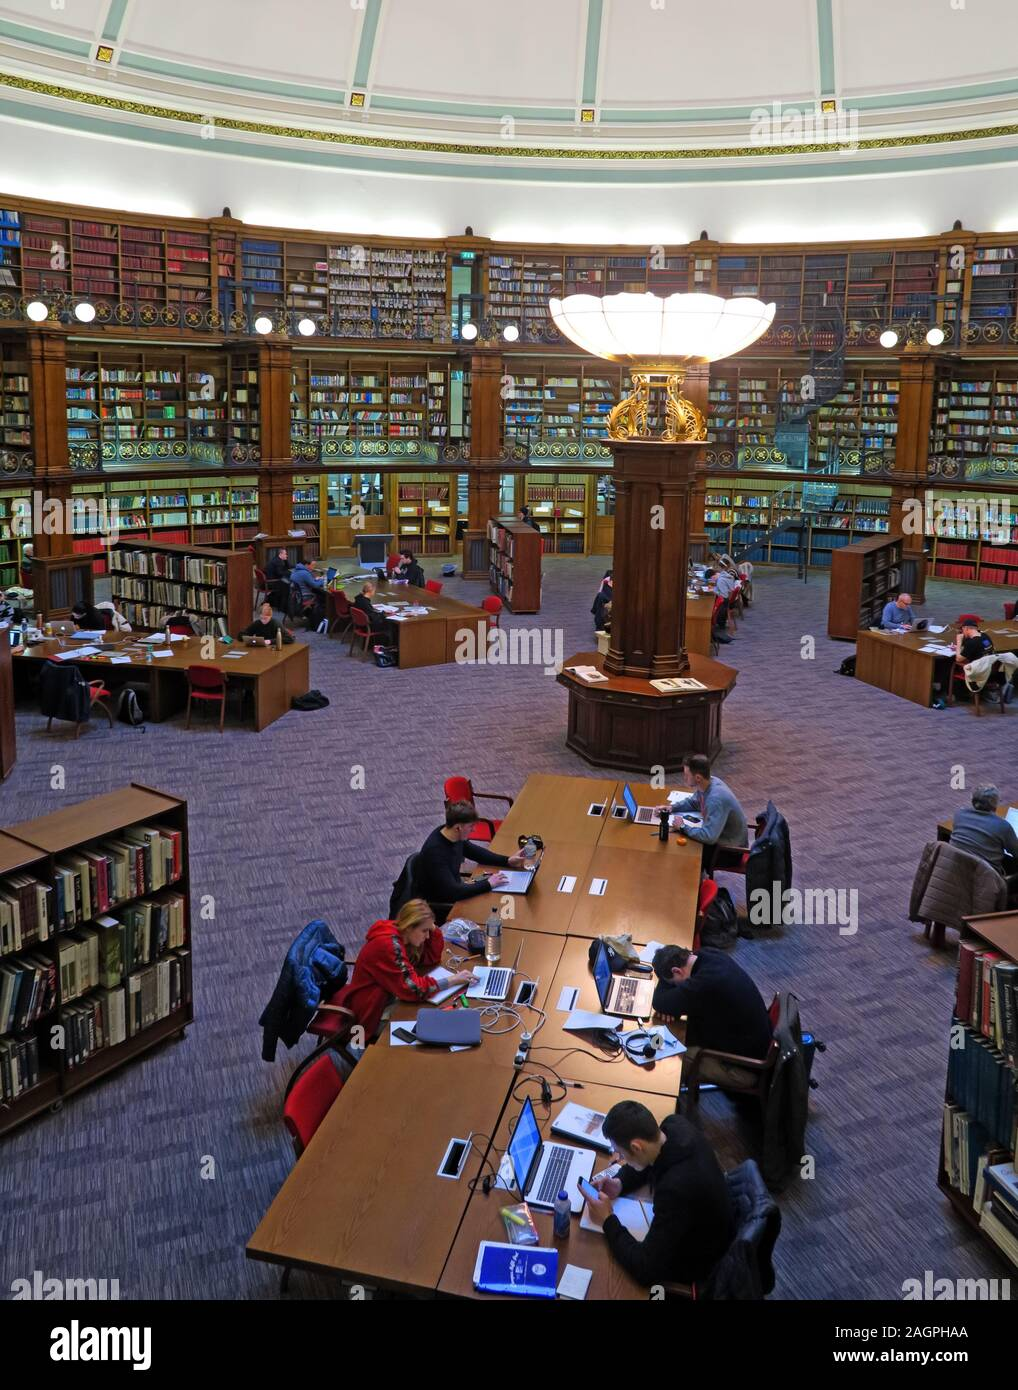 Readers in Liverpool Central Library, William Brown St, Liverpool,England,UK, L3 8EW Stock Photo